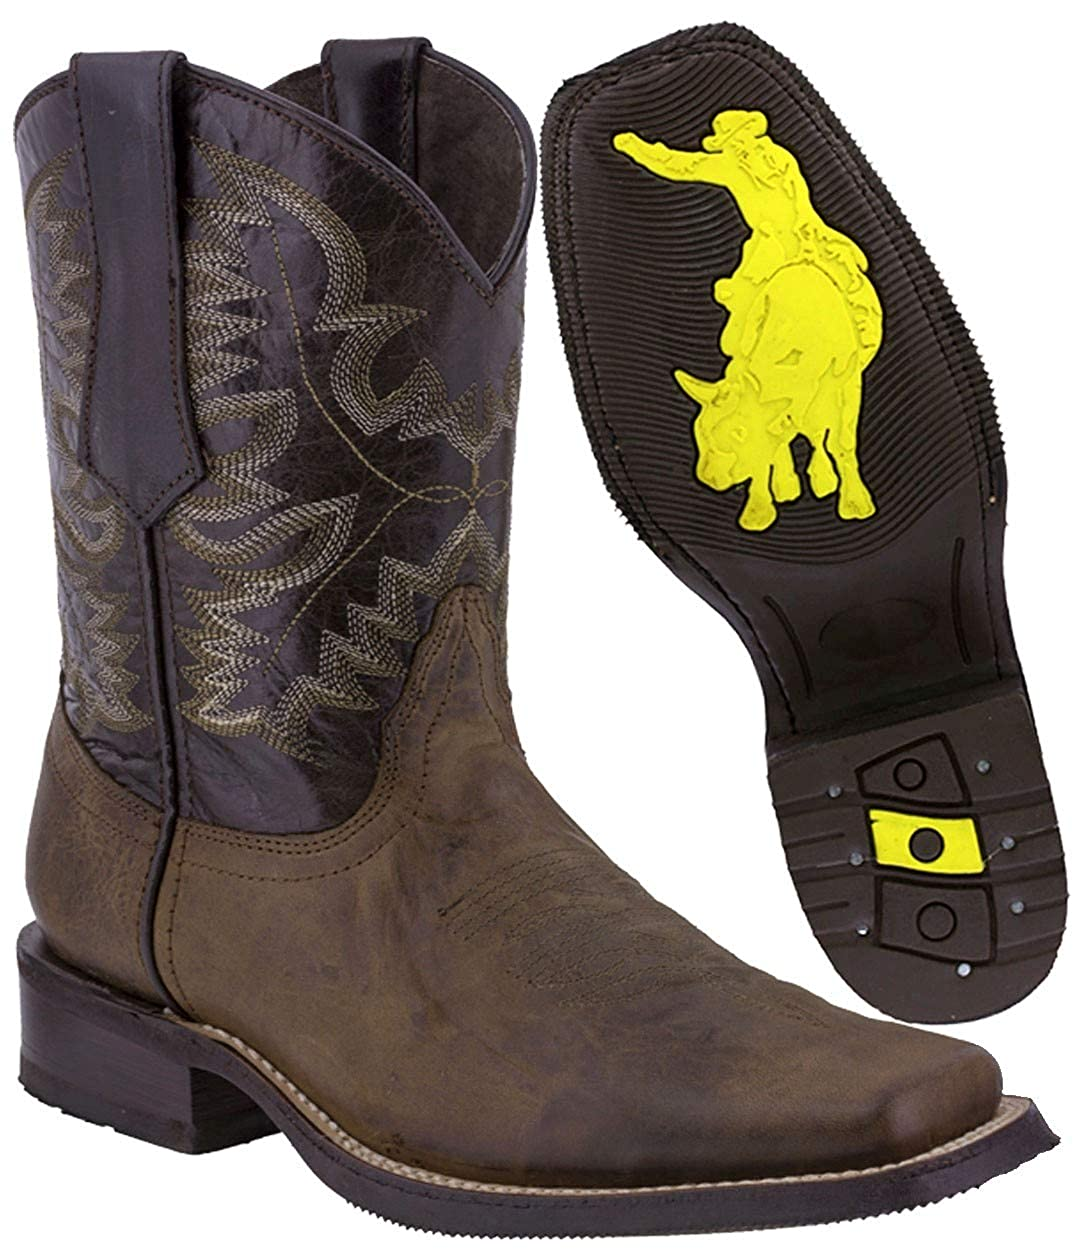 Texas Legacy - Men's Leather Western Cowboy Boots Rubber Sole Square Toe